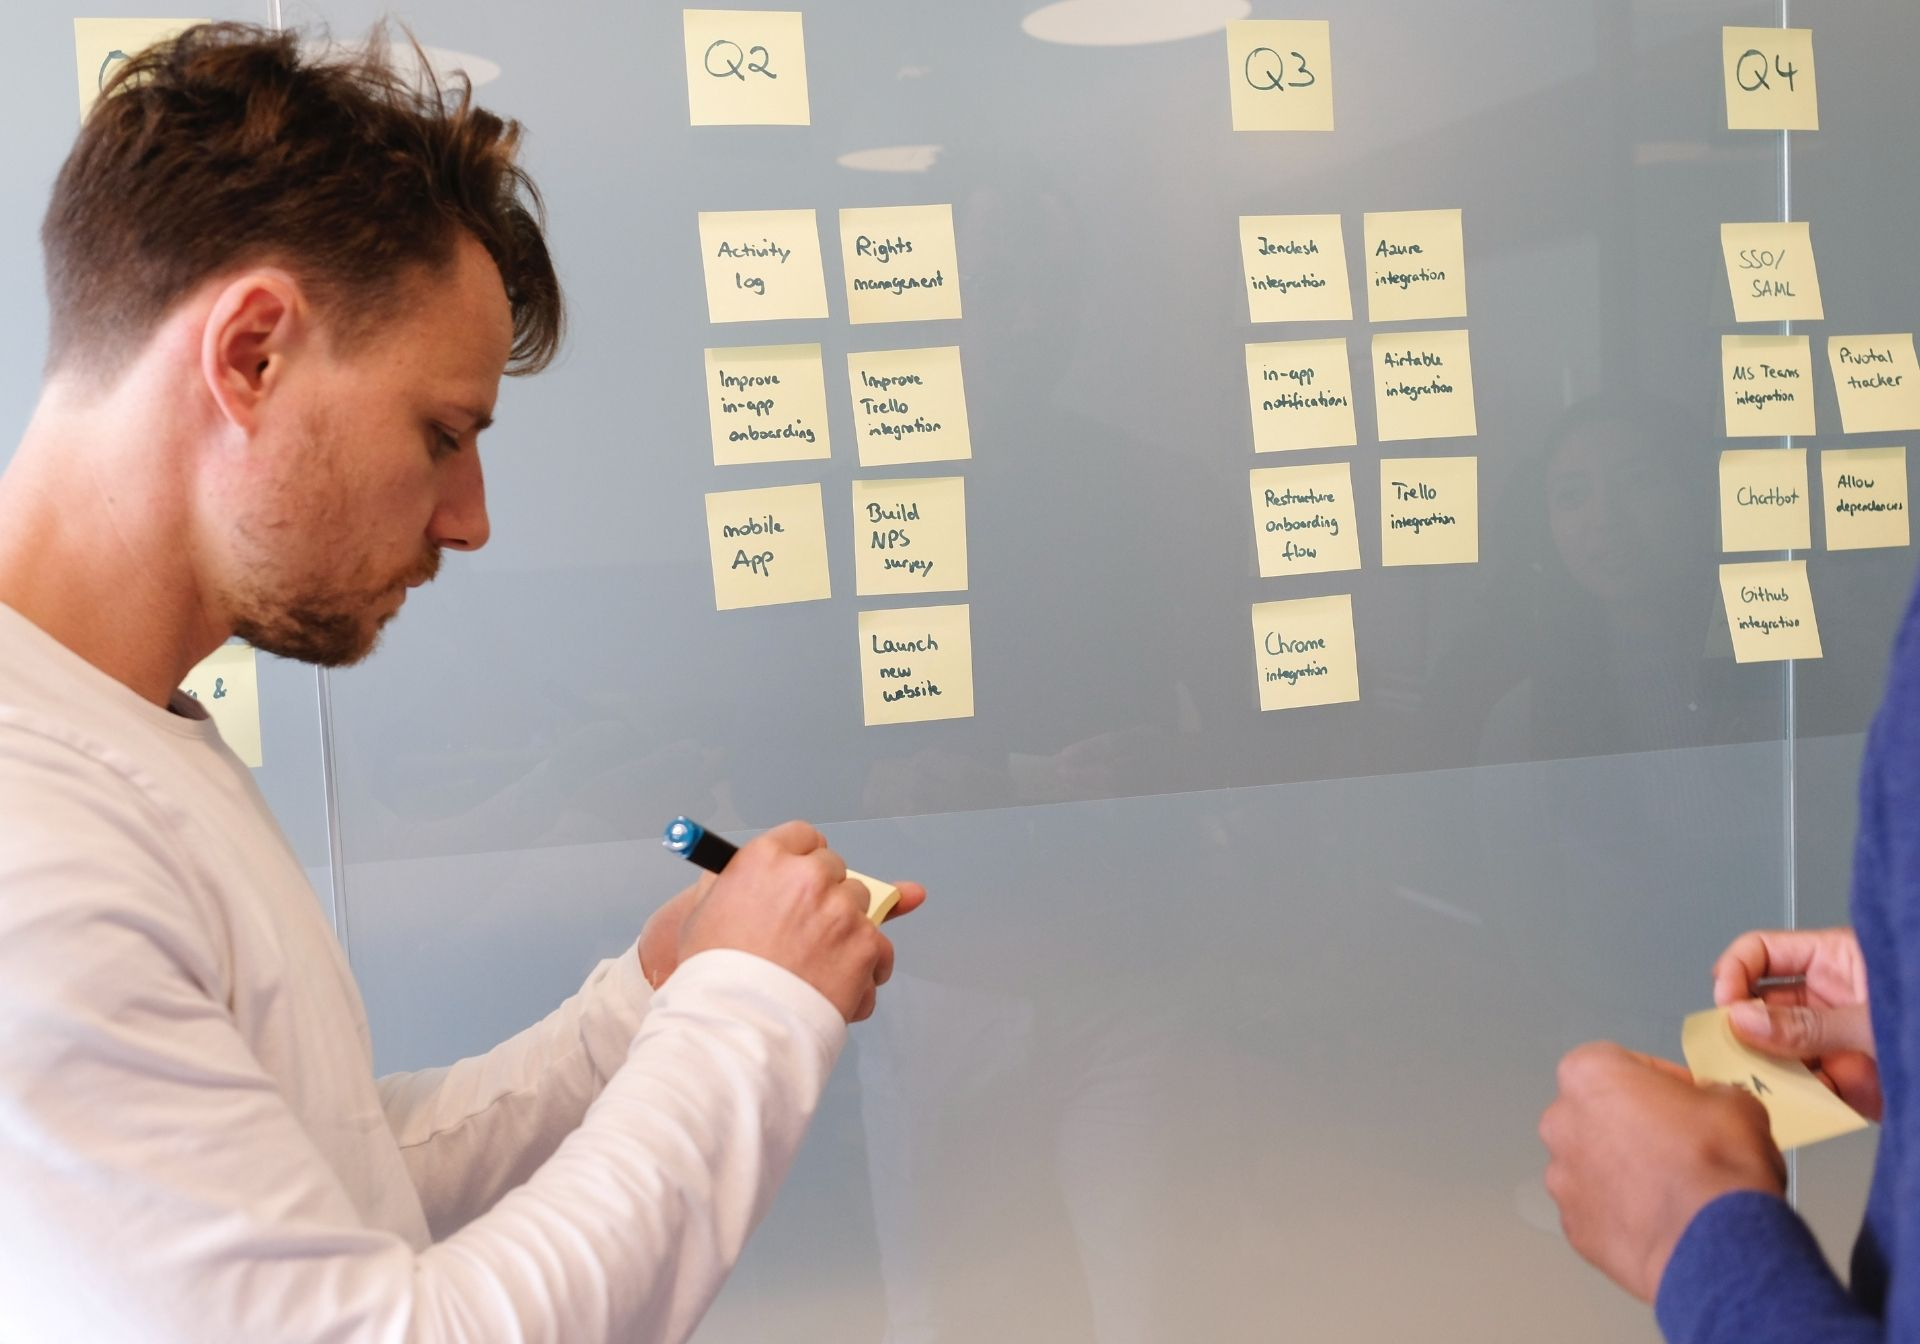 A Man Placing Post-It Notes On A Board